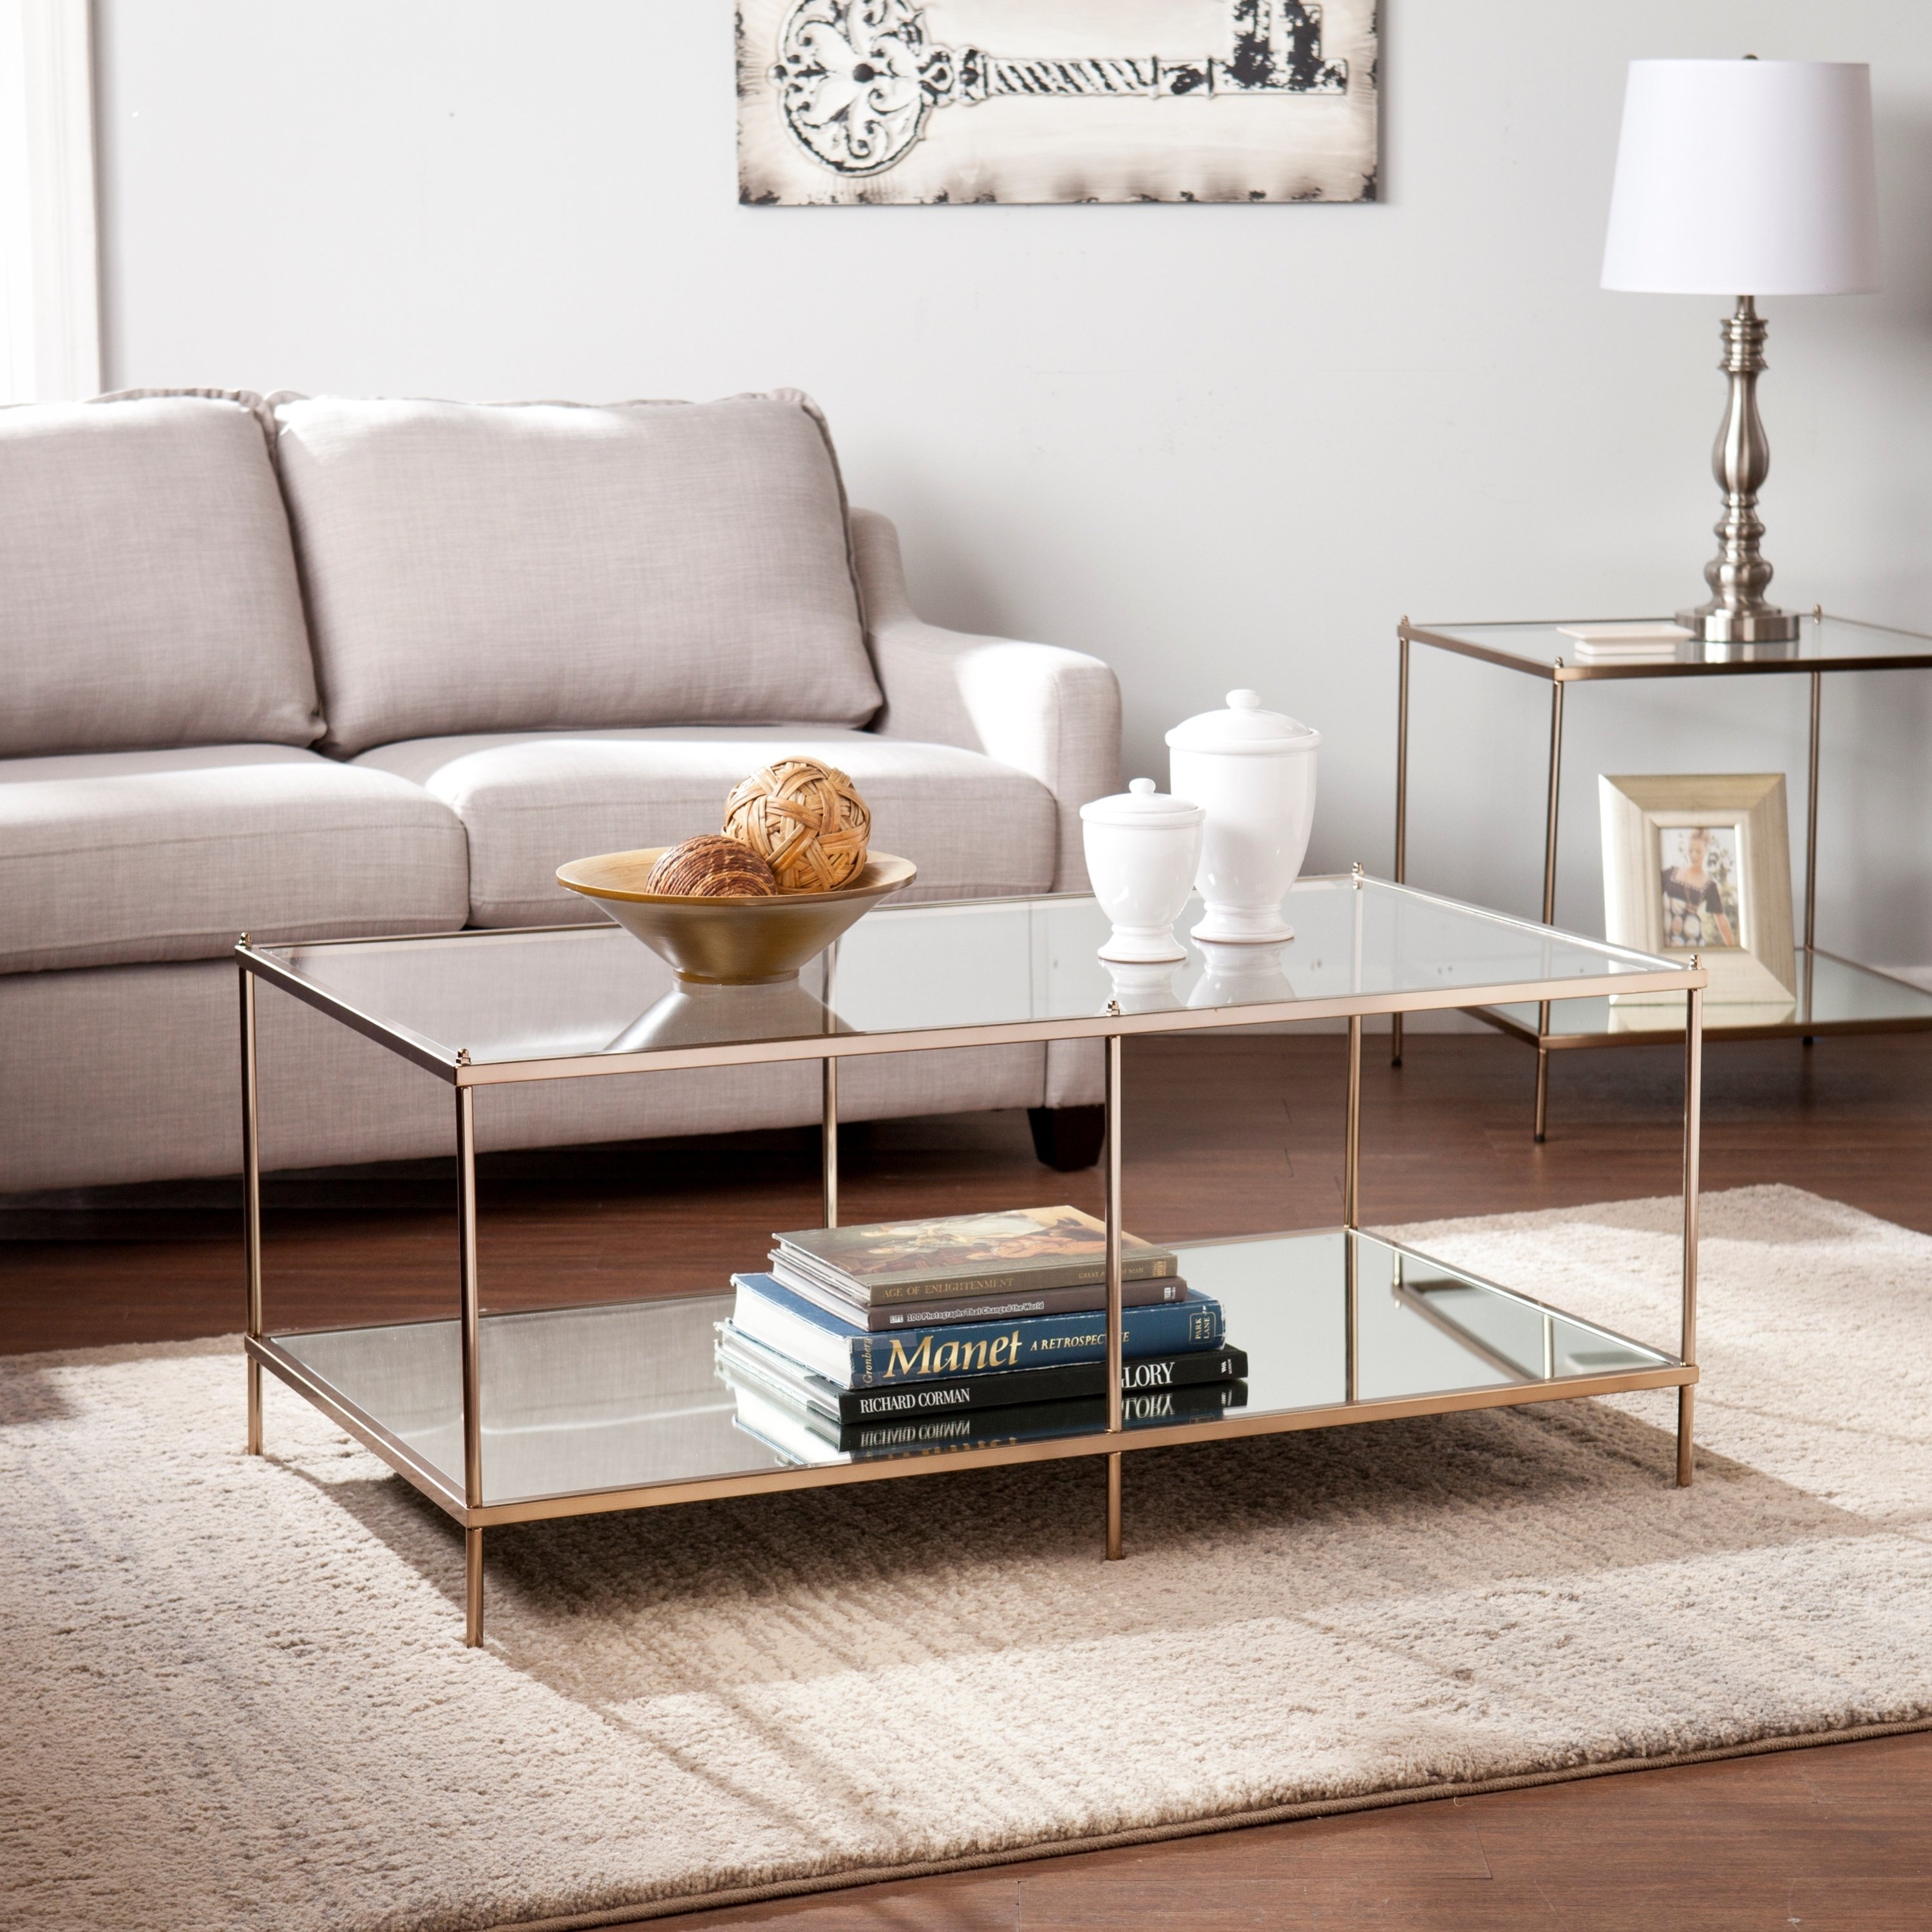 Shop Harper Blvd Kendall Goldtone Glass Top Coffee Table – Free In Harper Down Oversized Sofa Chairs (View 17 of 25)